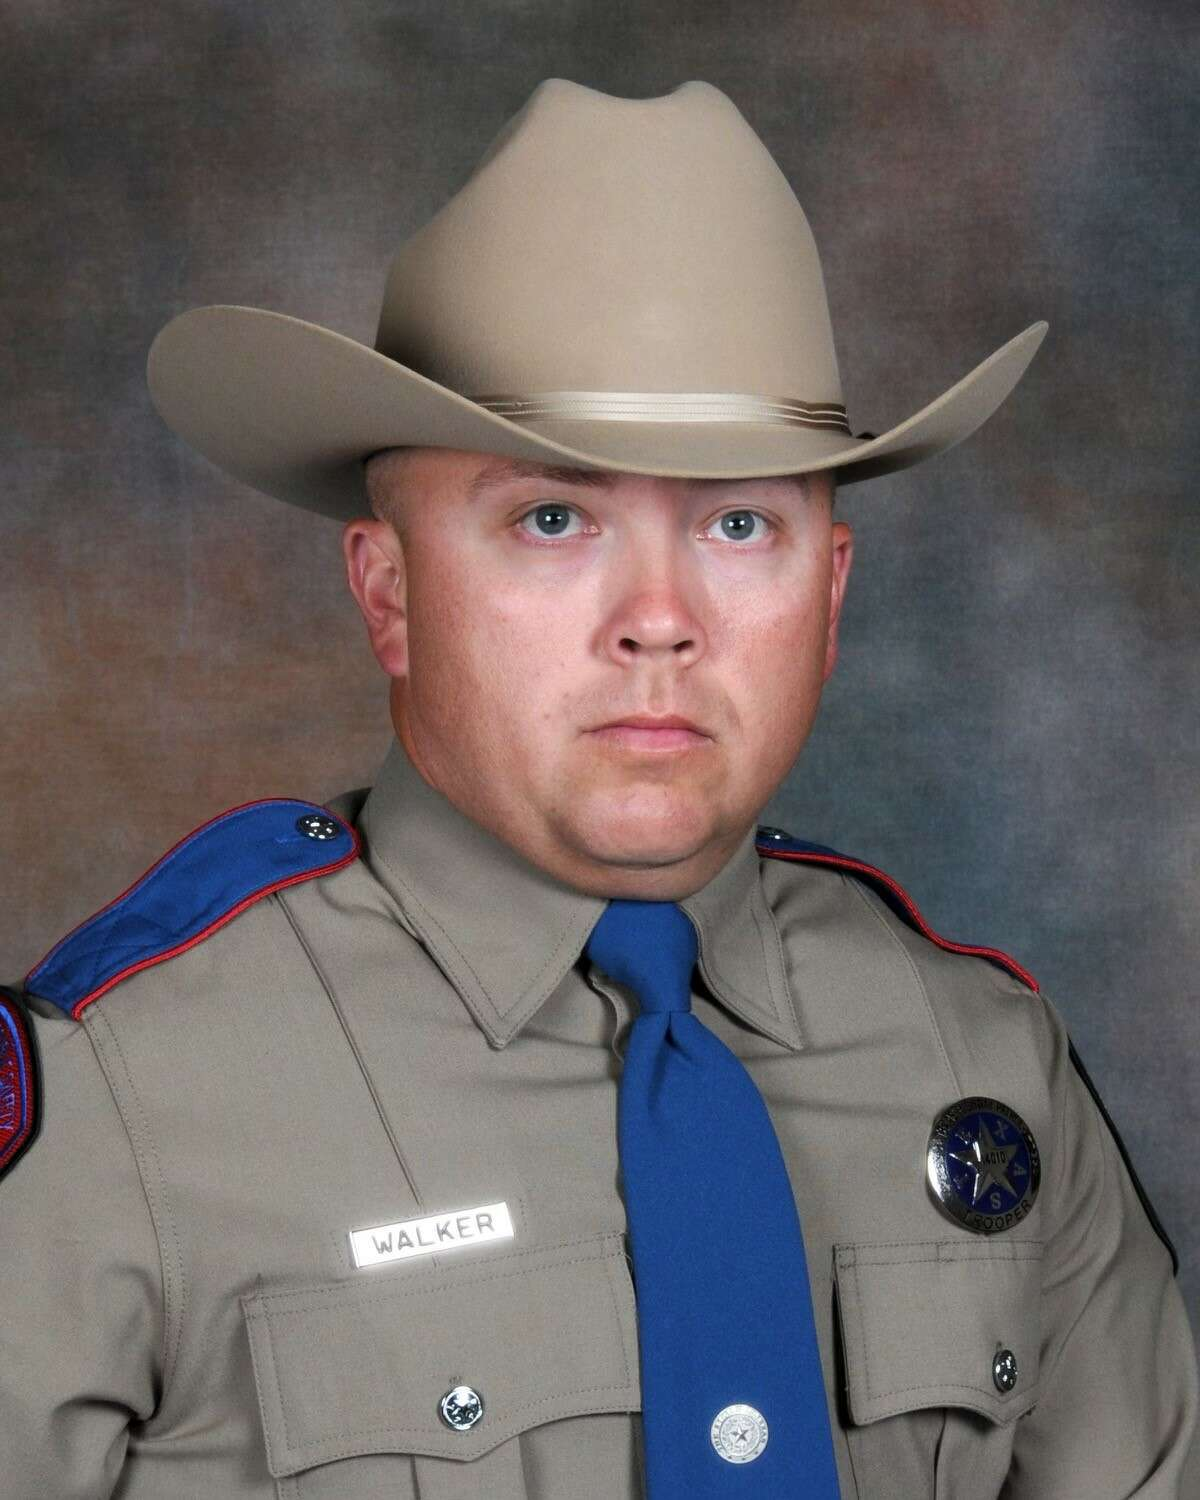 Highway Patrol Trooper Chad Walker, 38, was fatally shot Friday during a traffic stop near Mexia, Texas.